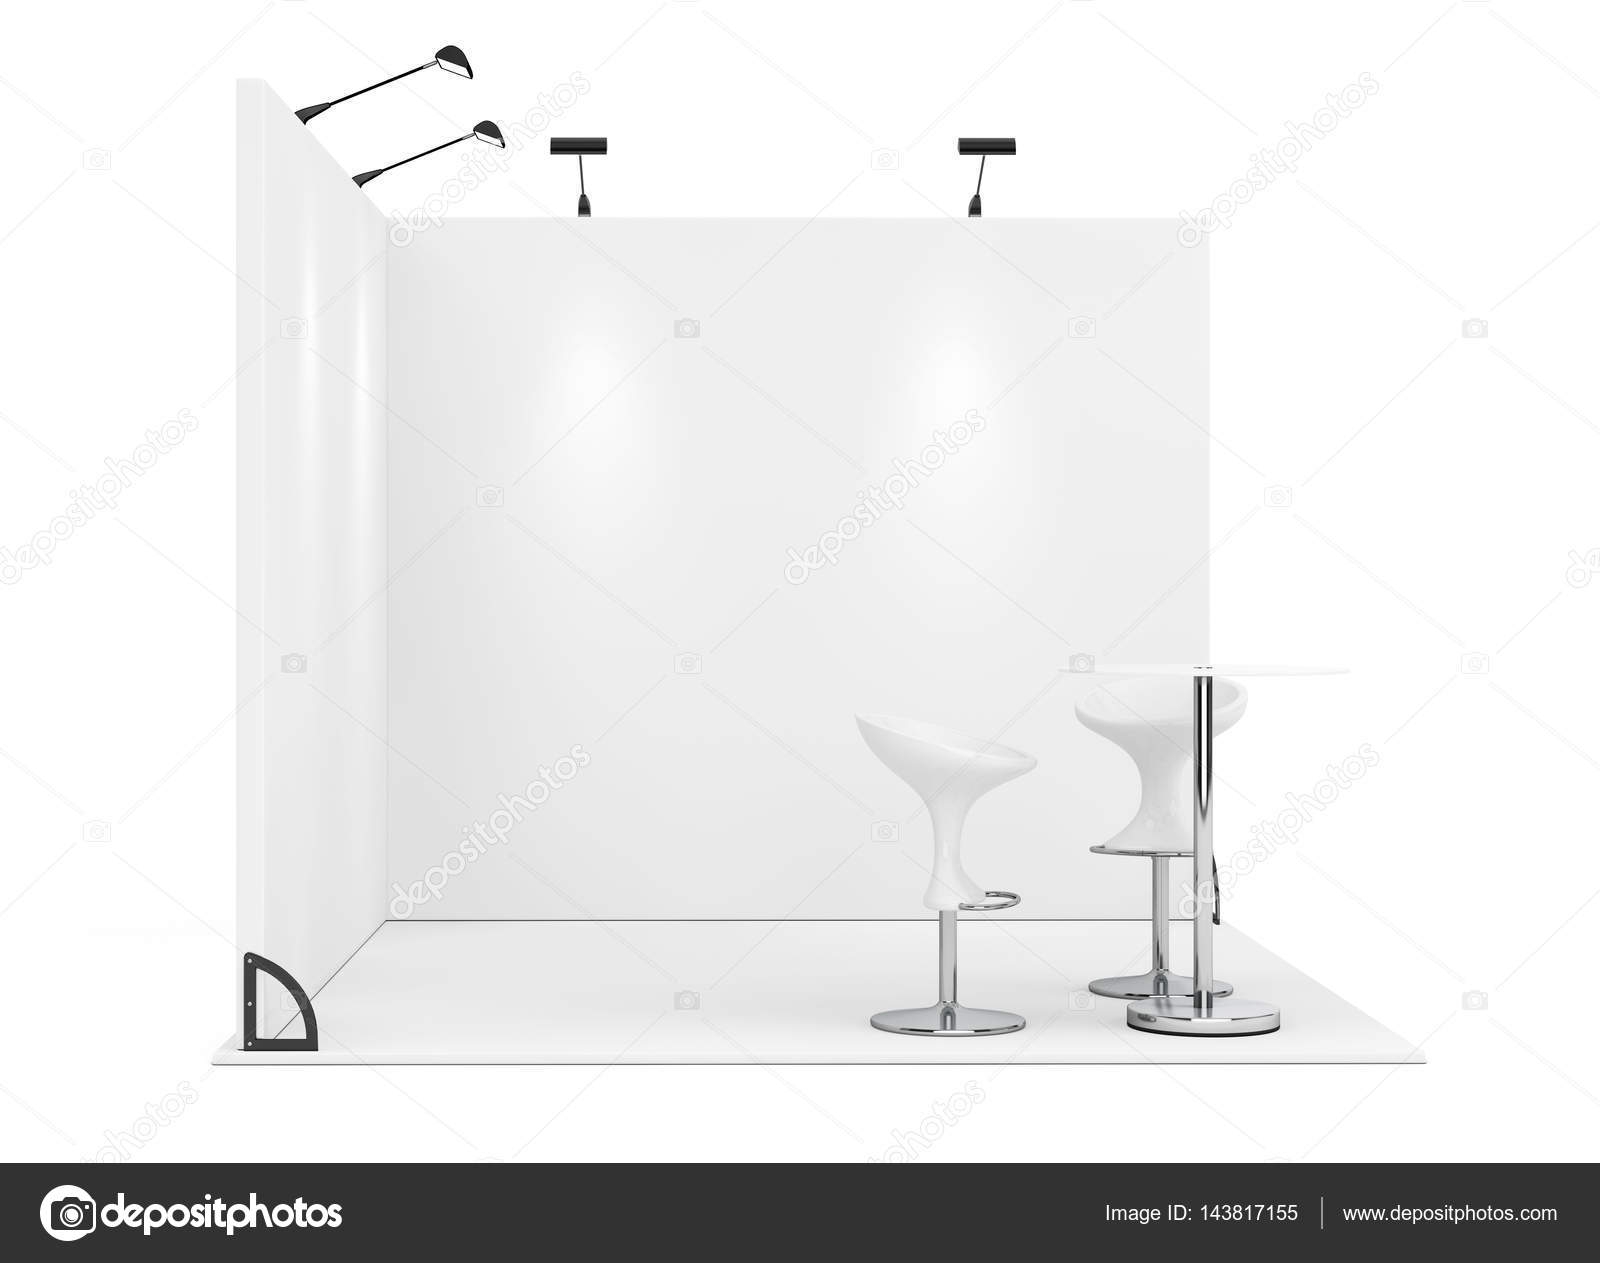 D Exhibition Stand Free Download : Trade commercial exhibition stand. 3d rendering u2014 stock photo